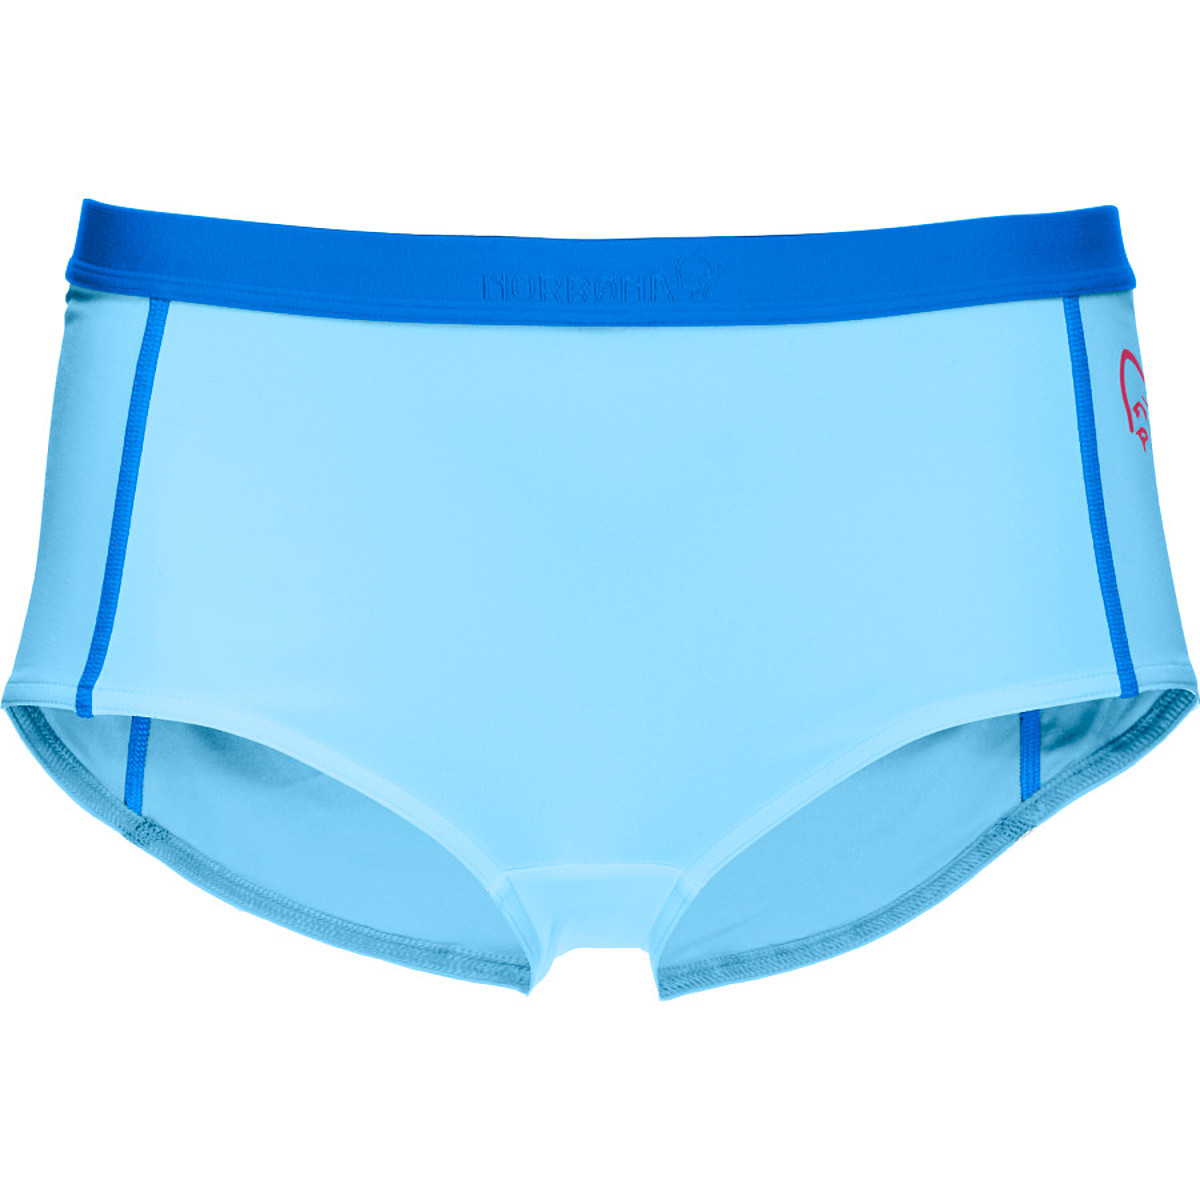 photo: Norrona /29 Tech Boxer Shorts boxers, briefs, bikini